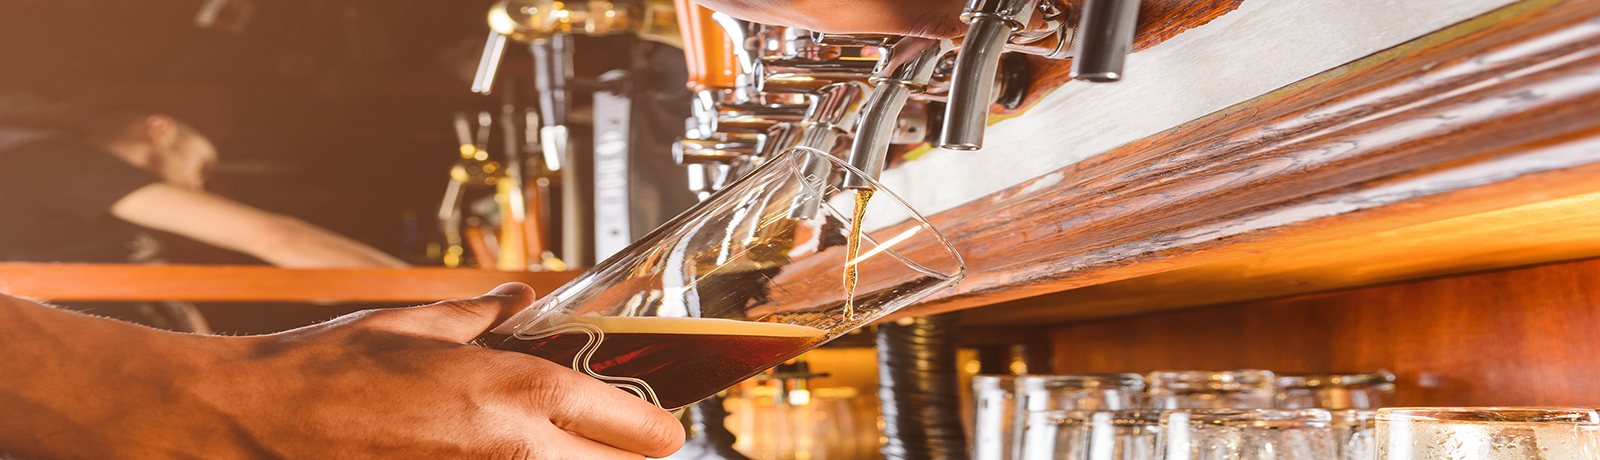 Draught beer dispense system hire